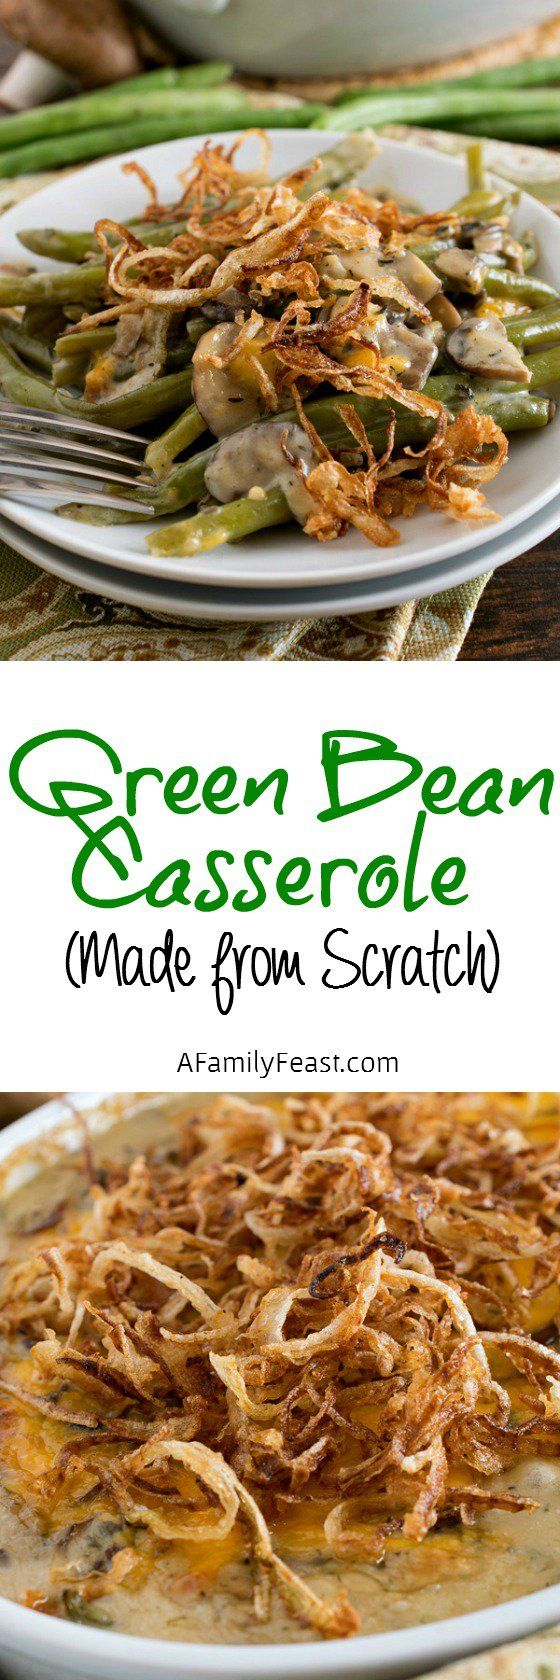 Our Green Bean Casserole is made entirely from scratch! No need to buy canned soup or onions ever again!